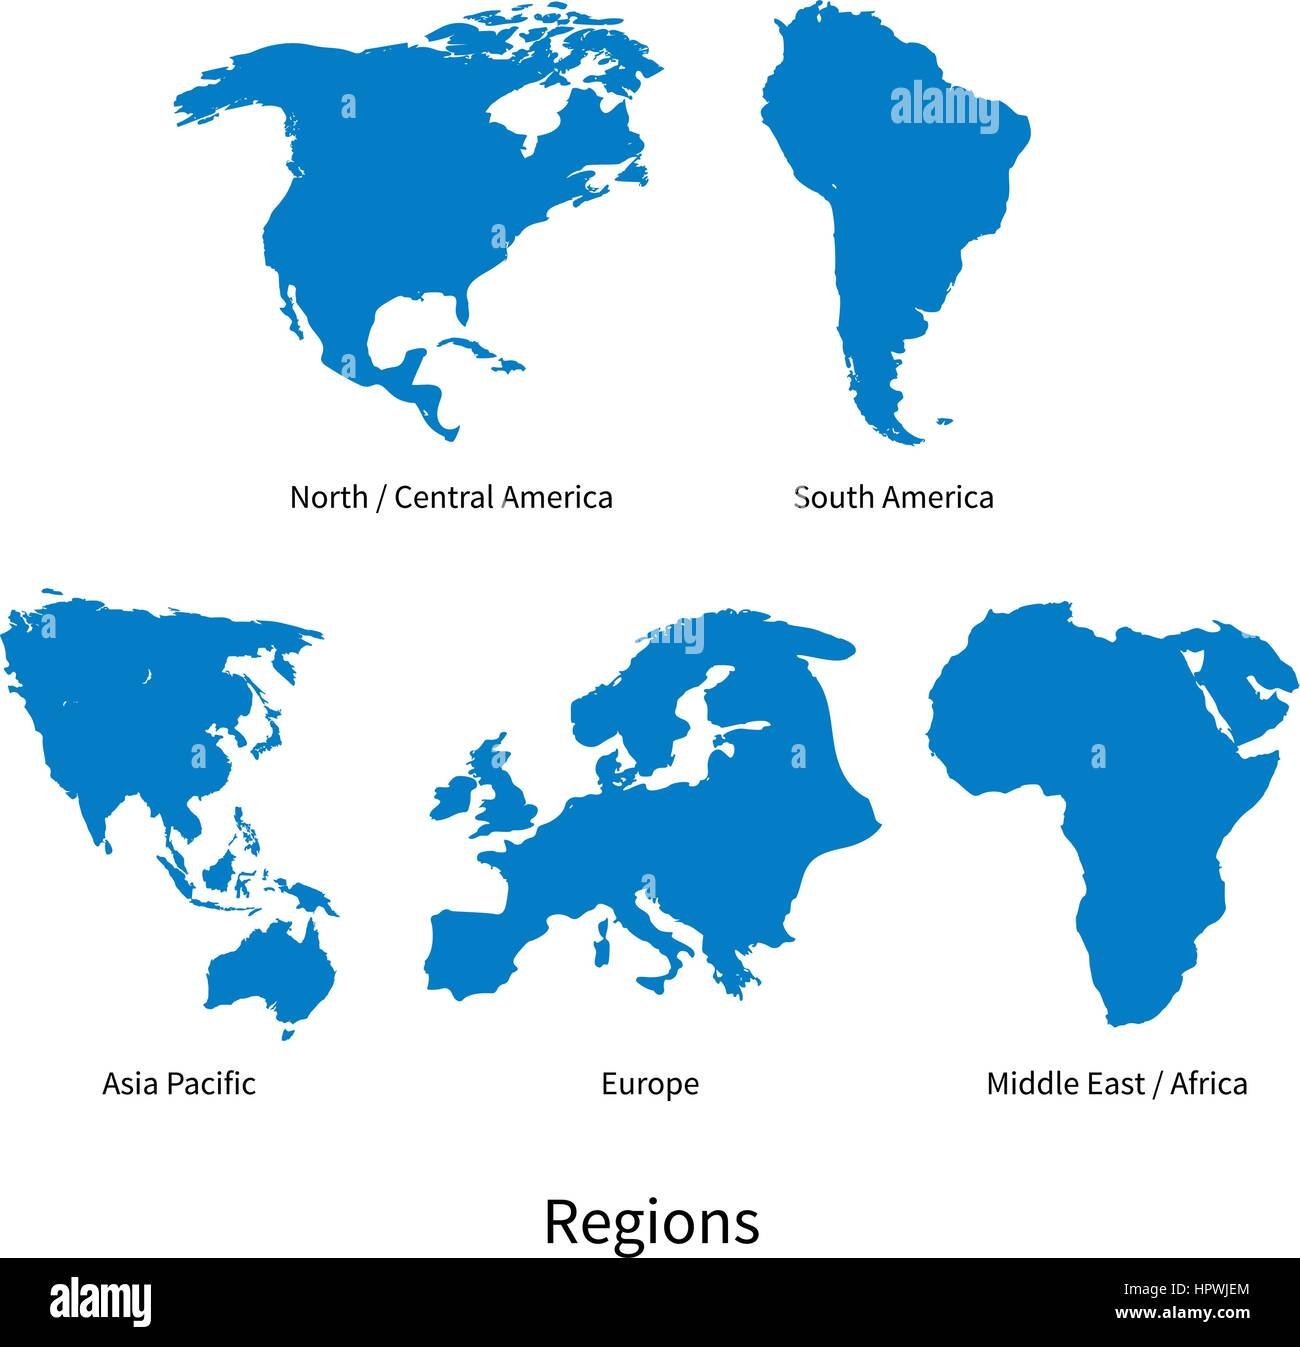 detailed vector map of north central america asia pacific europe south america middle and east africa regions on white